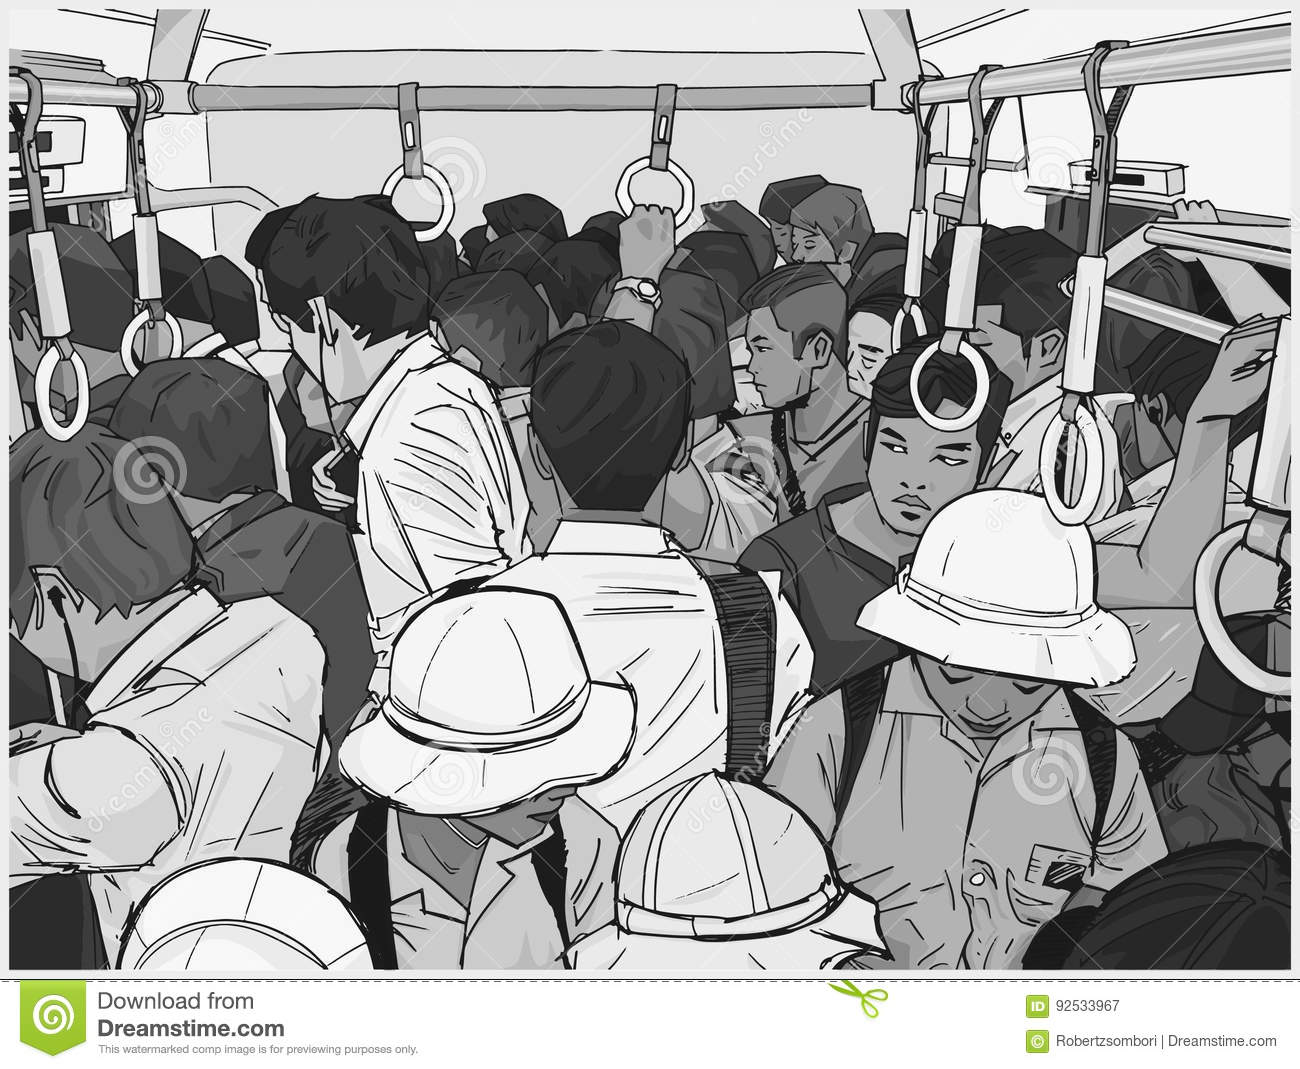 Illustration Of Crowded Commuter Train Royalty Free Stock